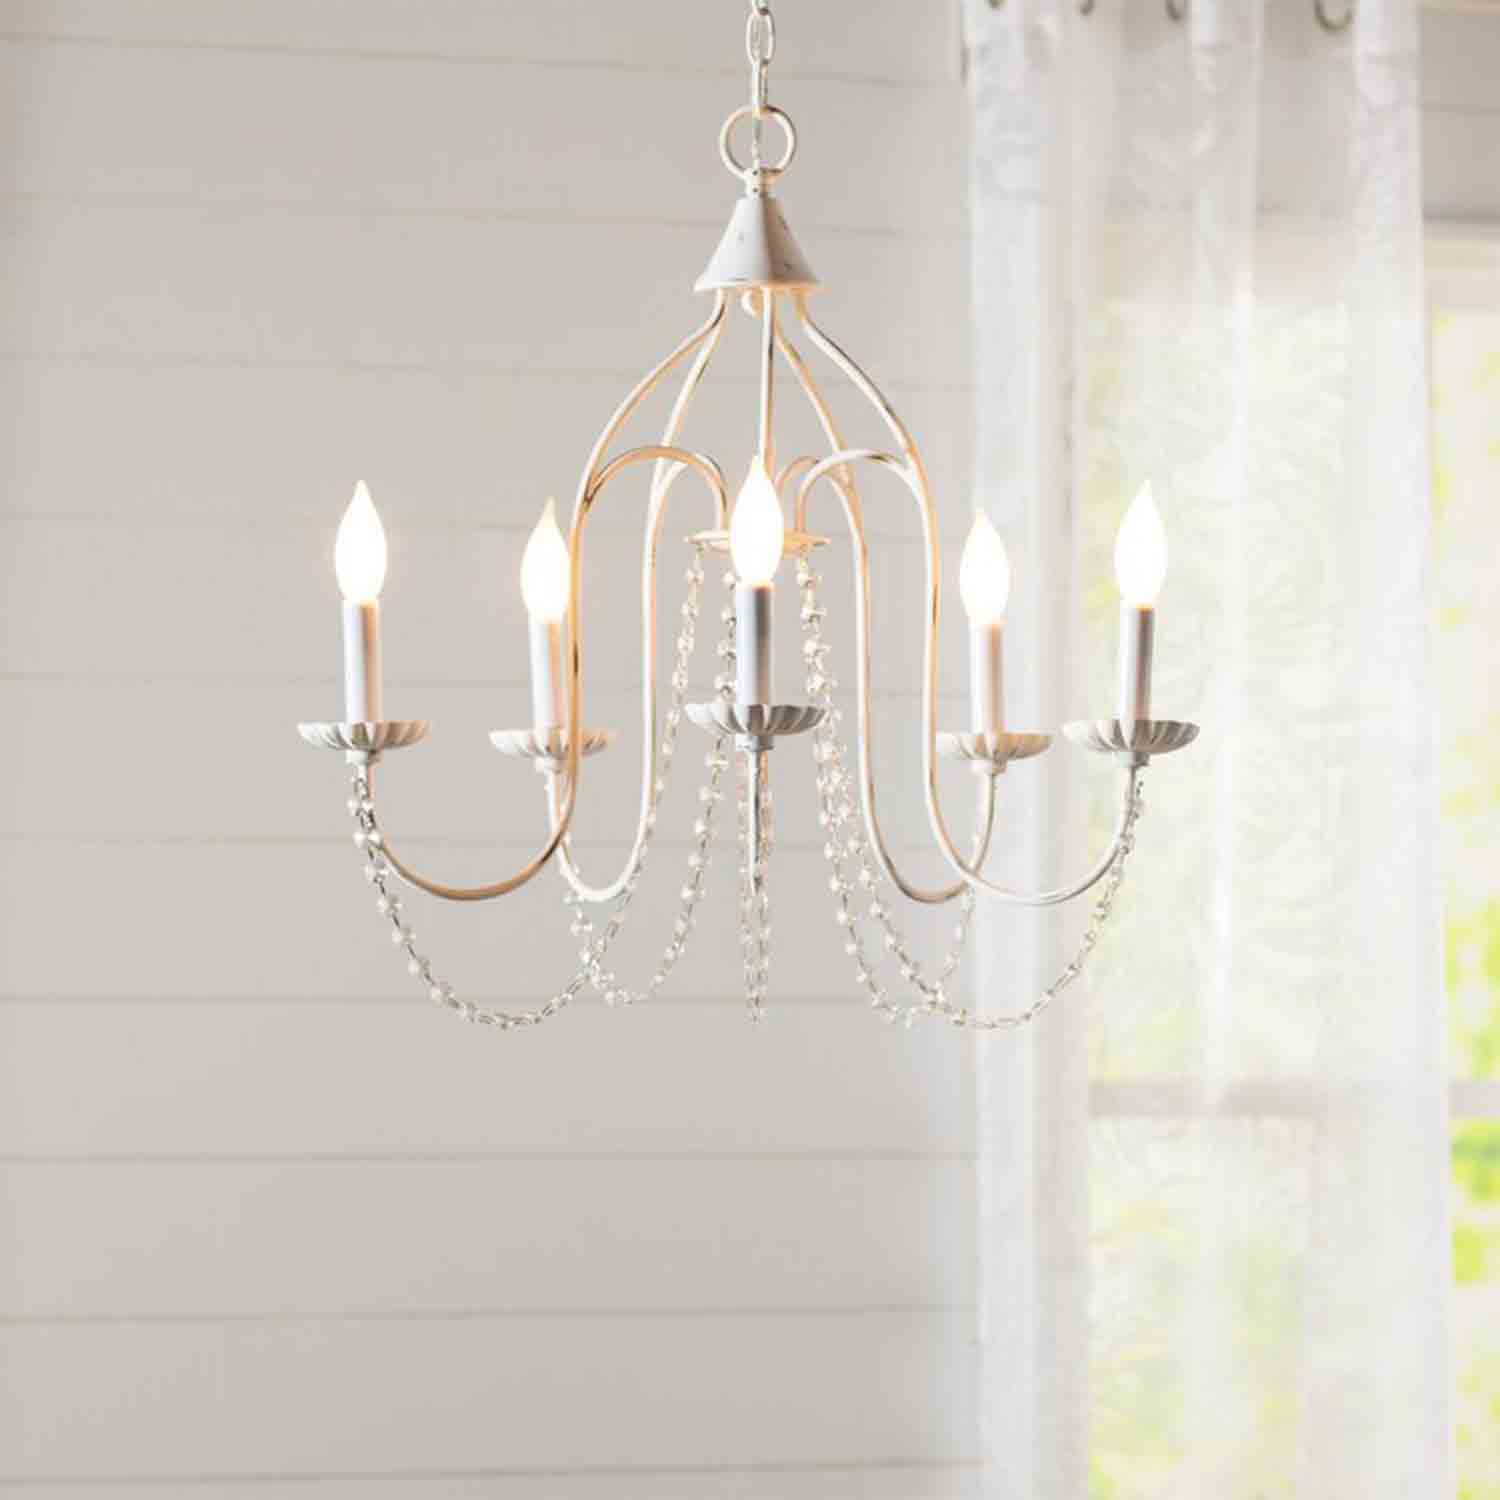 Kelly Clarkson Home Andrews 5 Light Candle Style Classic Chandelier